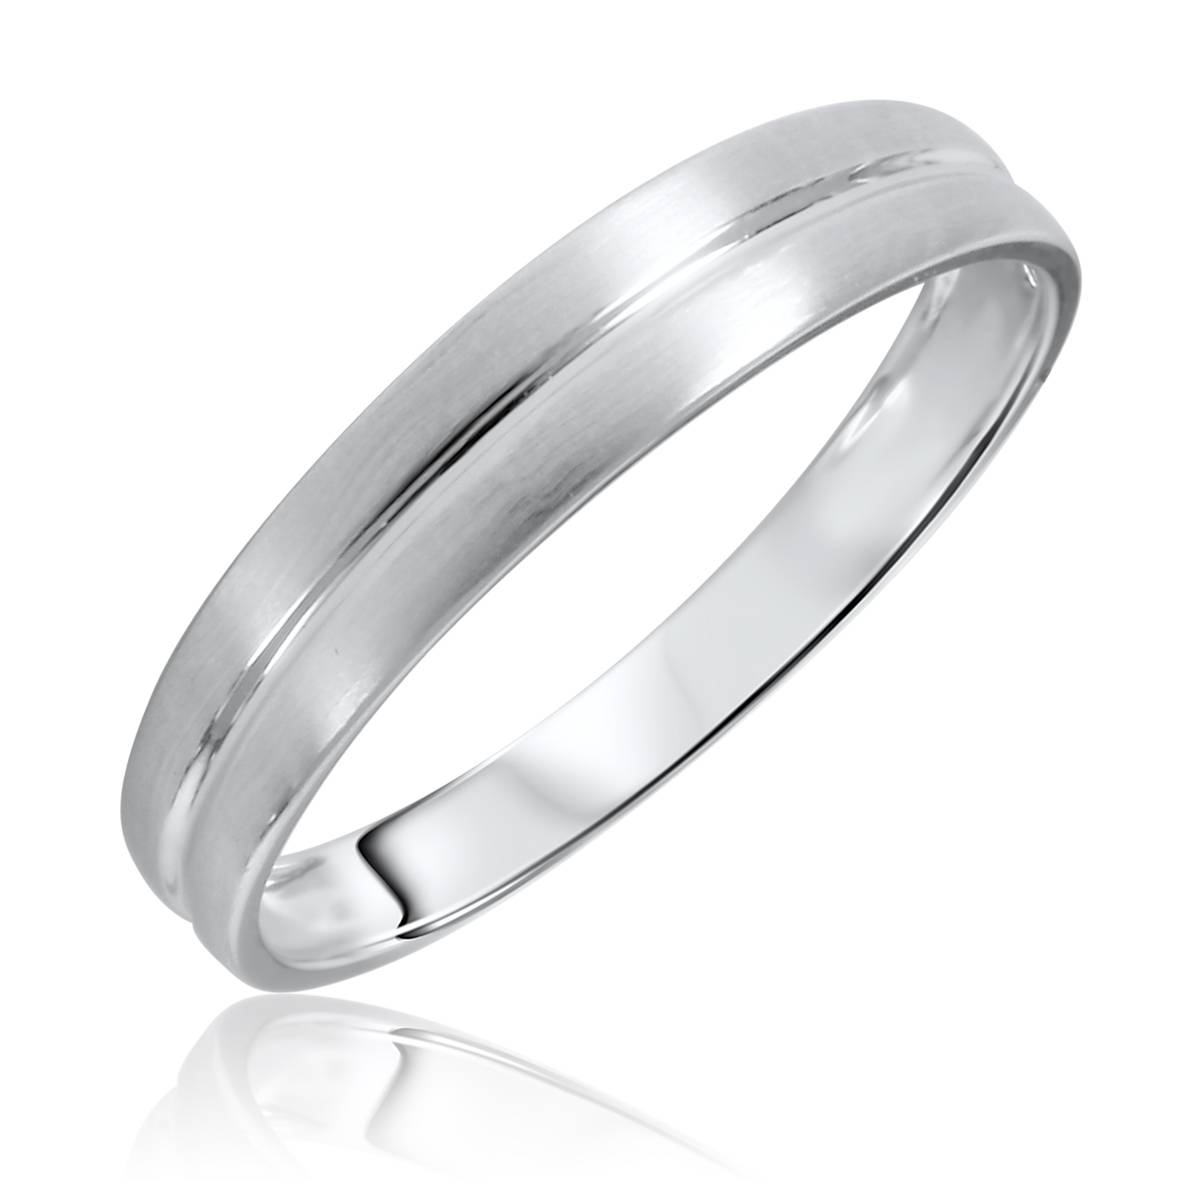 No Diamondstraditional Mens Wedding Band 14K White Gold For White Gold Male Wedding Bands (View 13 of 15)